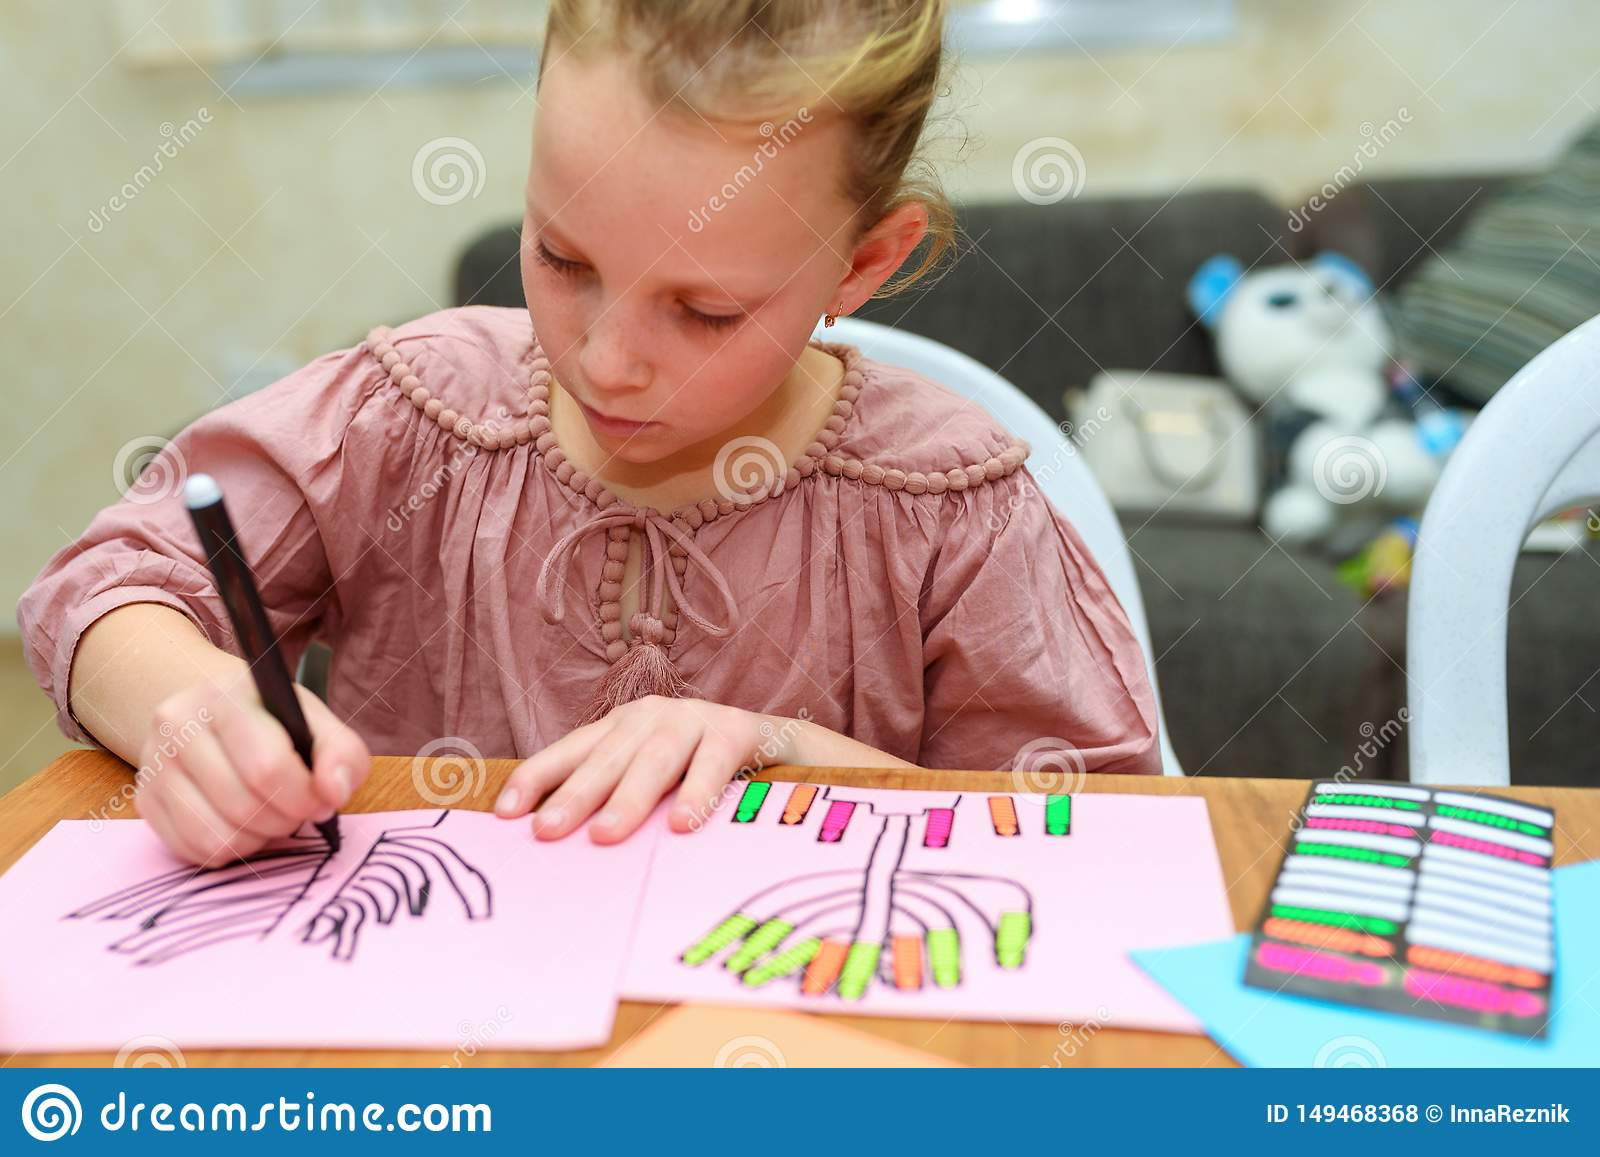 Kid Draw and Play With Stickers. Playing with stickers can help child on important developmental areas.